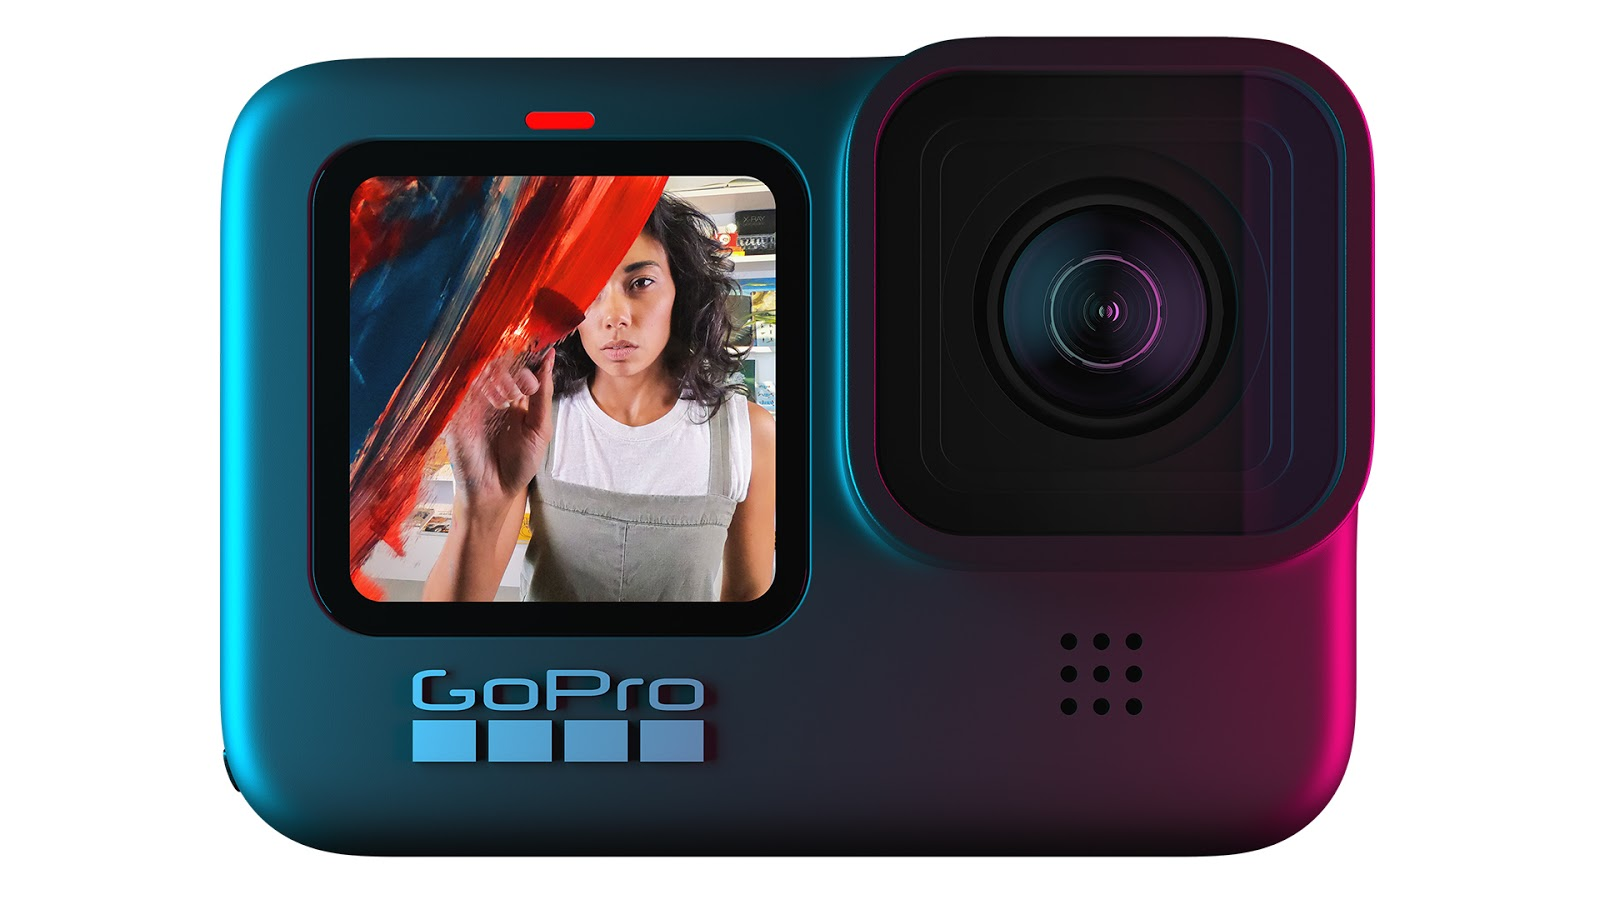 The GoPro HERO9 Black has been announced.